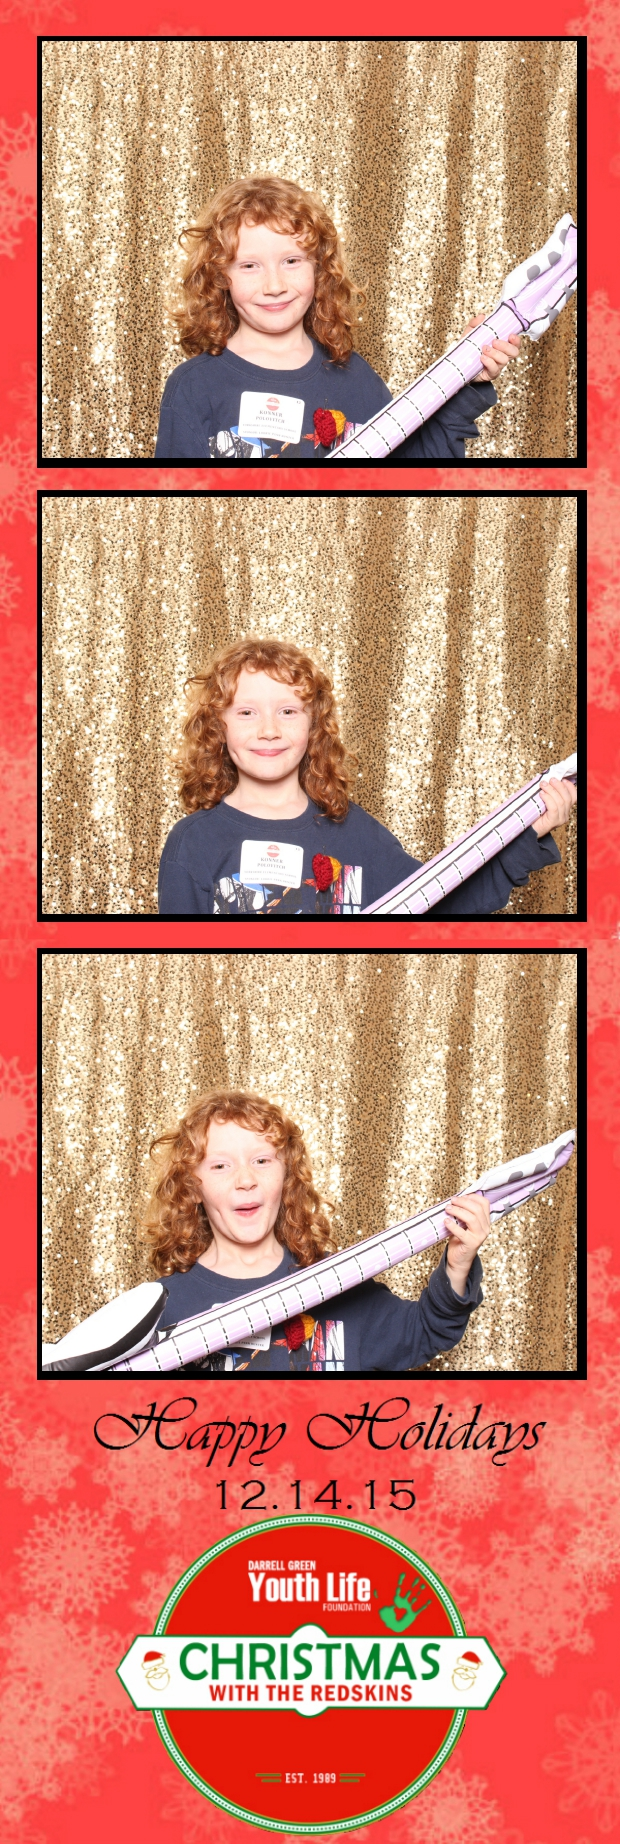 Guest House Events Photo Booth DGYLF Strips (49).jpg